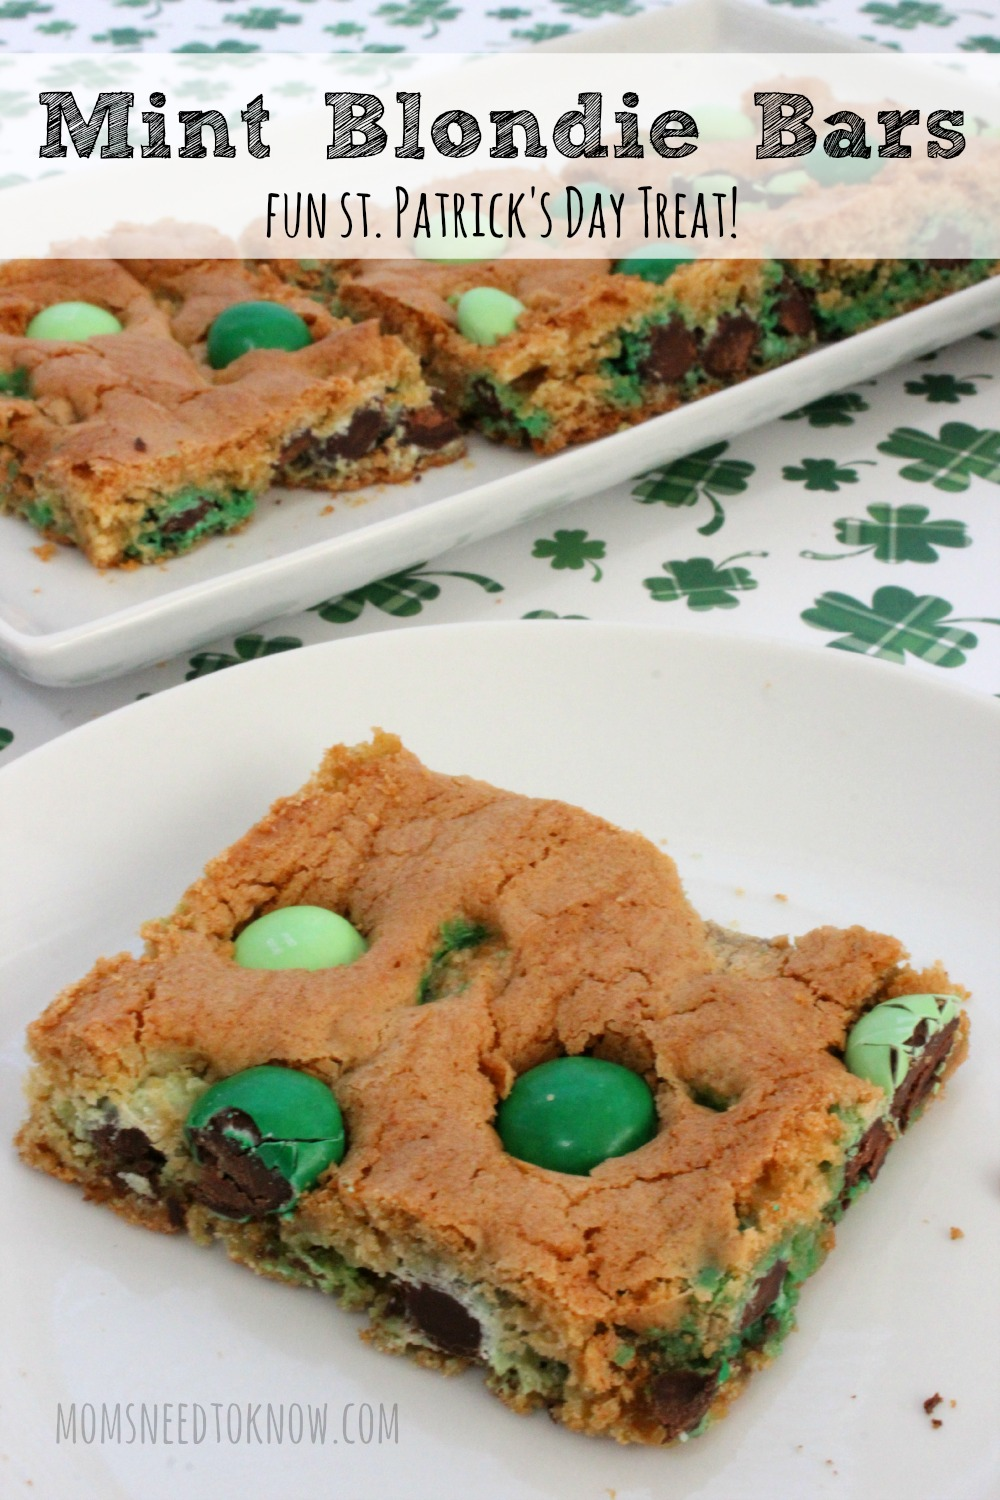 Mint Blondie Bars For St. Patrick's Day